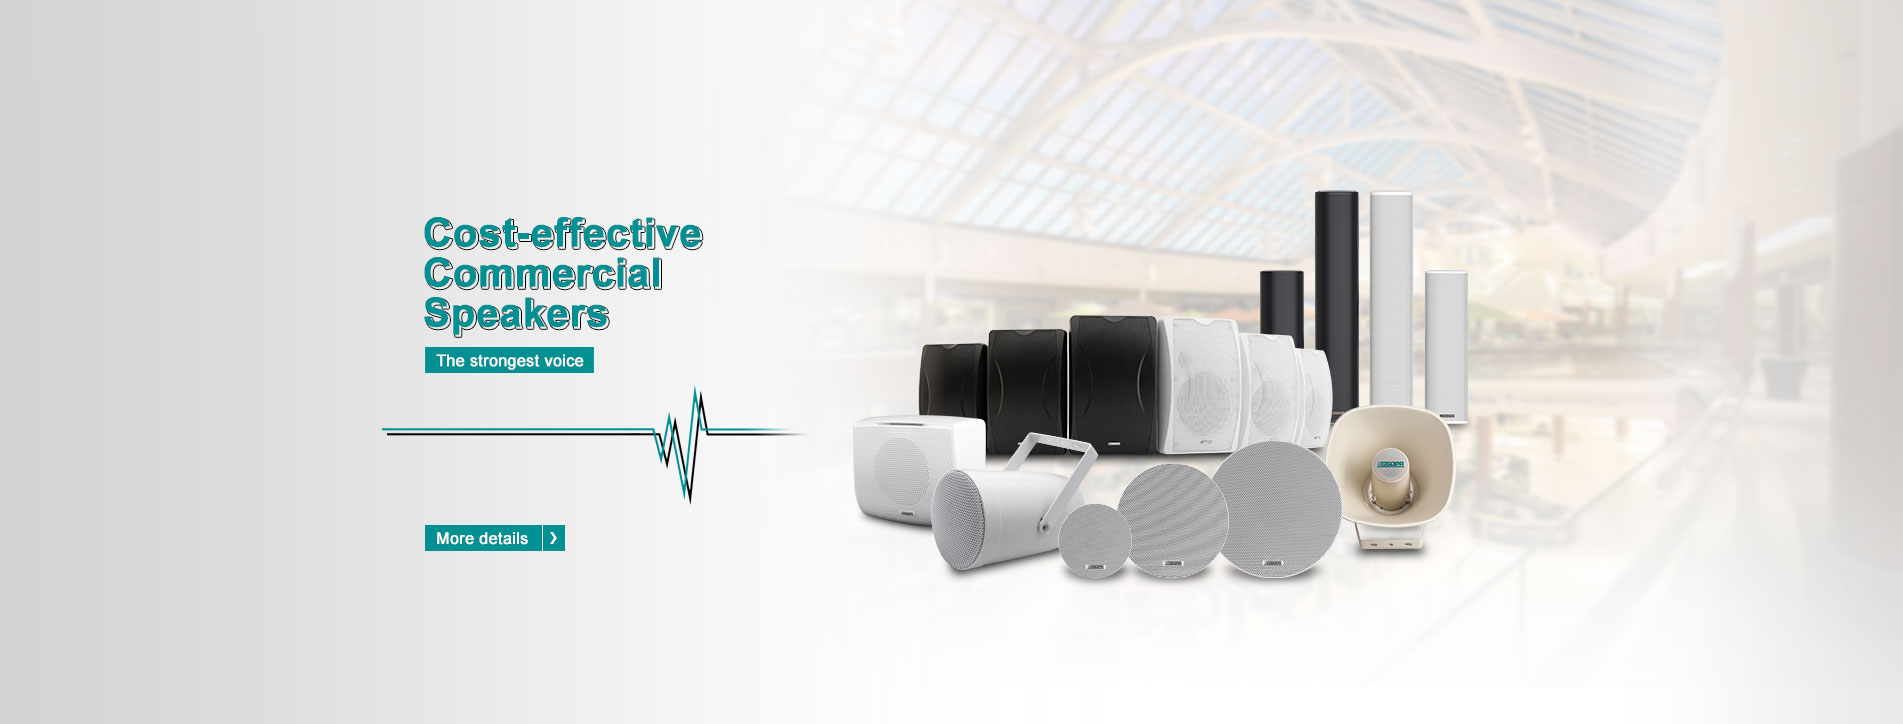 2 Zone Compact highly integrated voice alarm and public address system